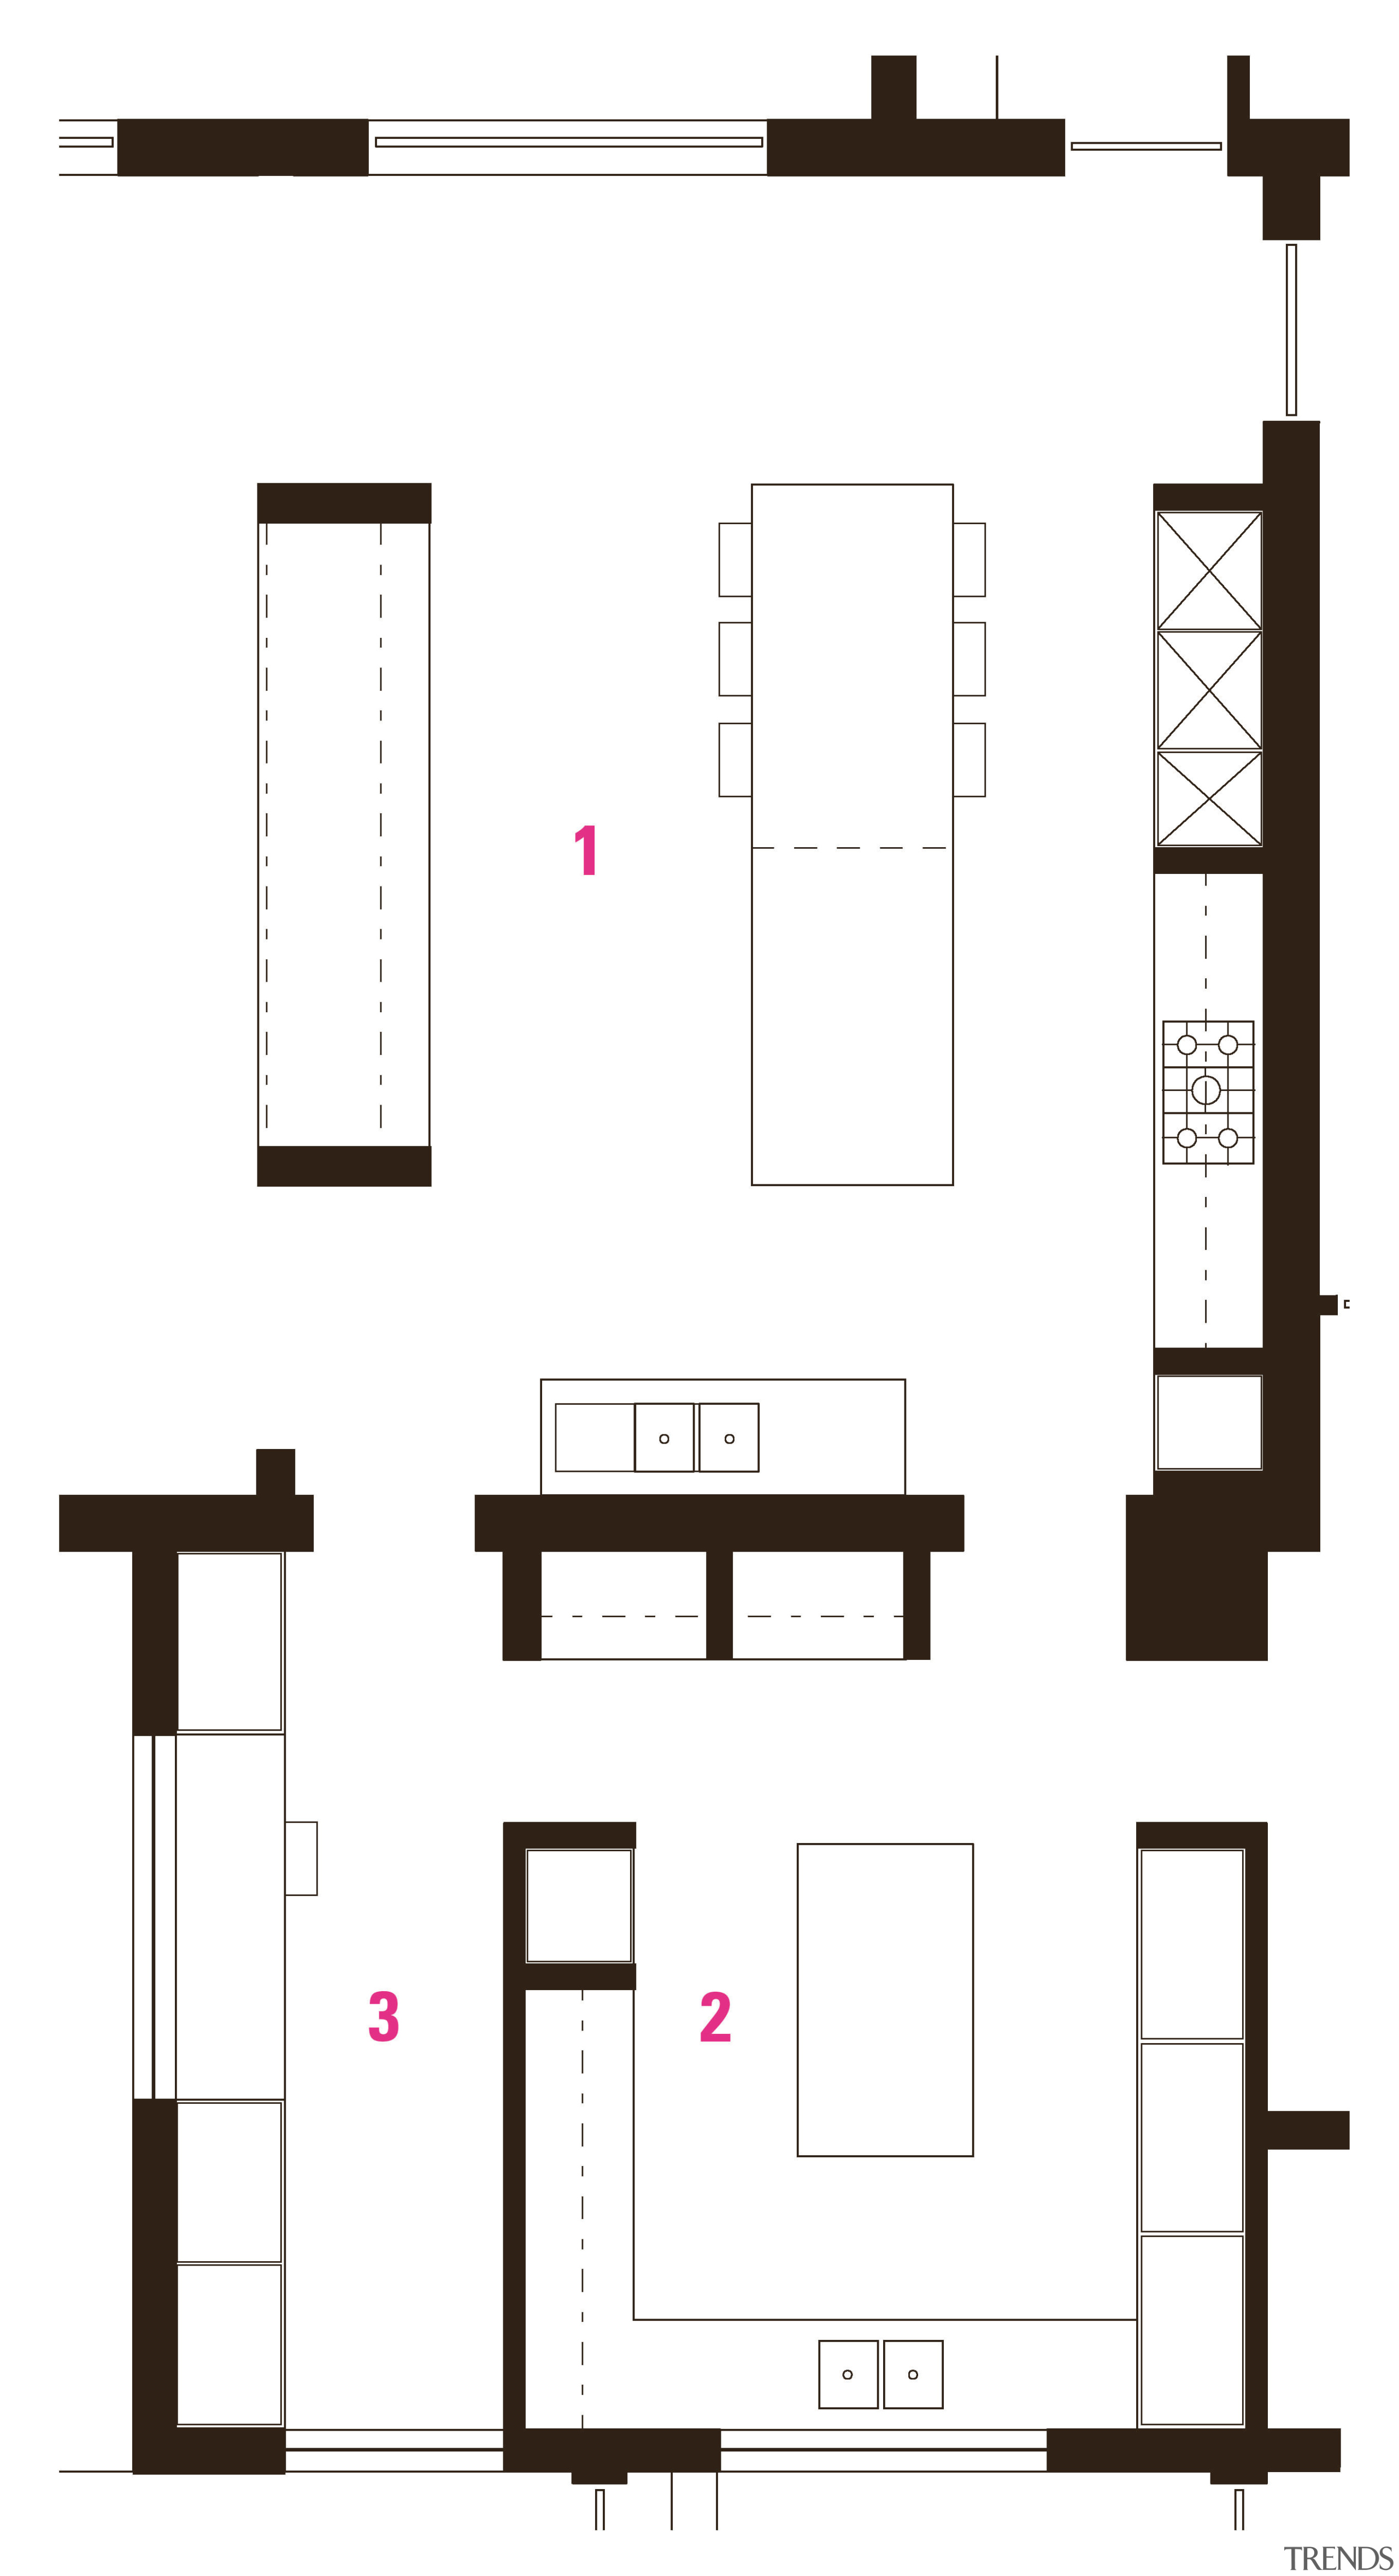 Plan of substantial kitchen by BE Architecture: 1 area, design, diagram, drawing, floor plan, font, furniture, line, product design, structure, white